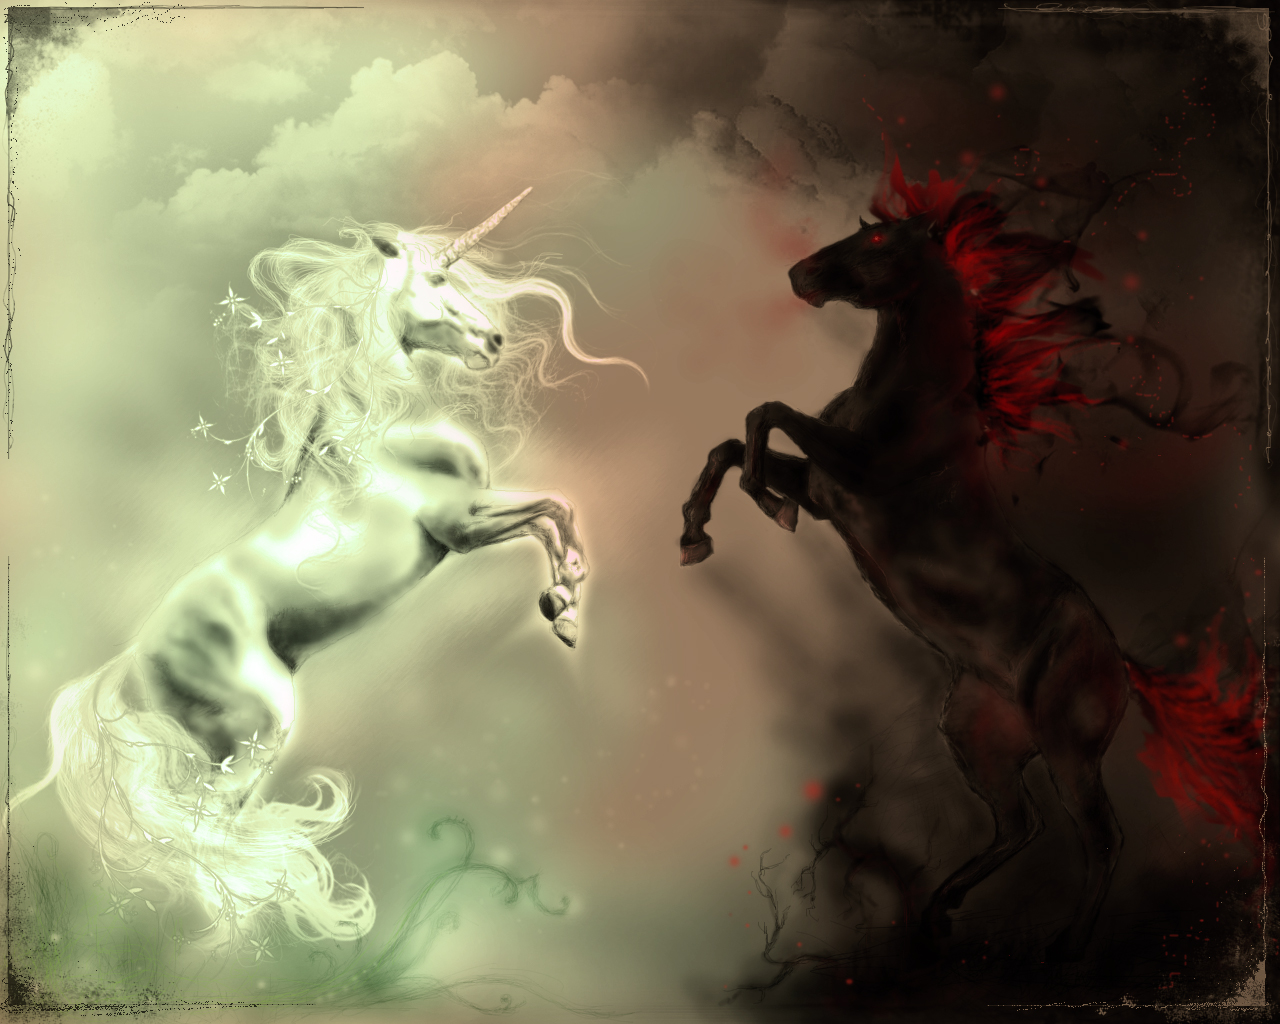 unicorn vs. nightmare